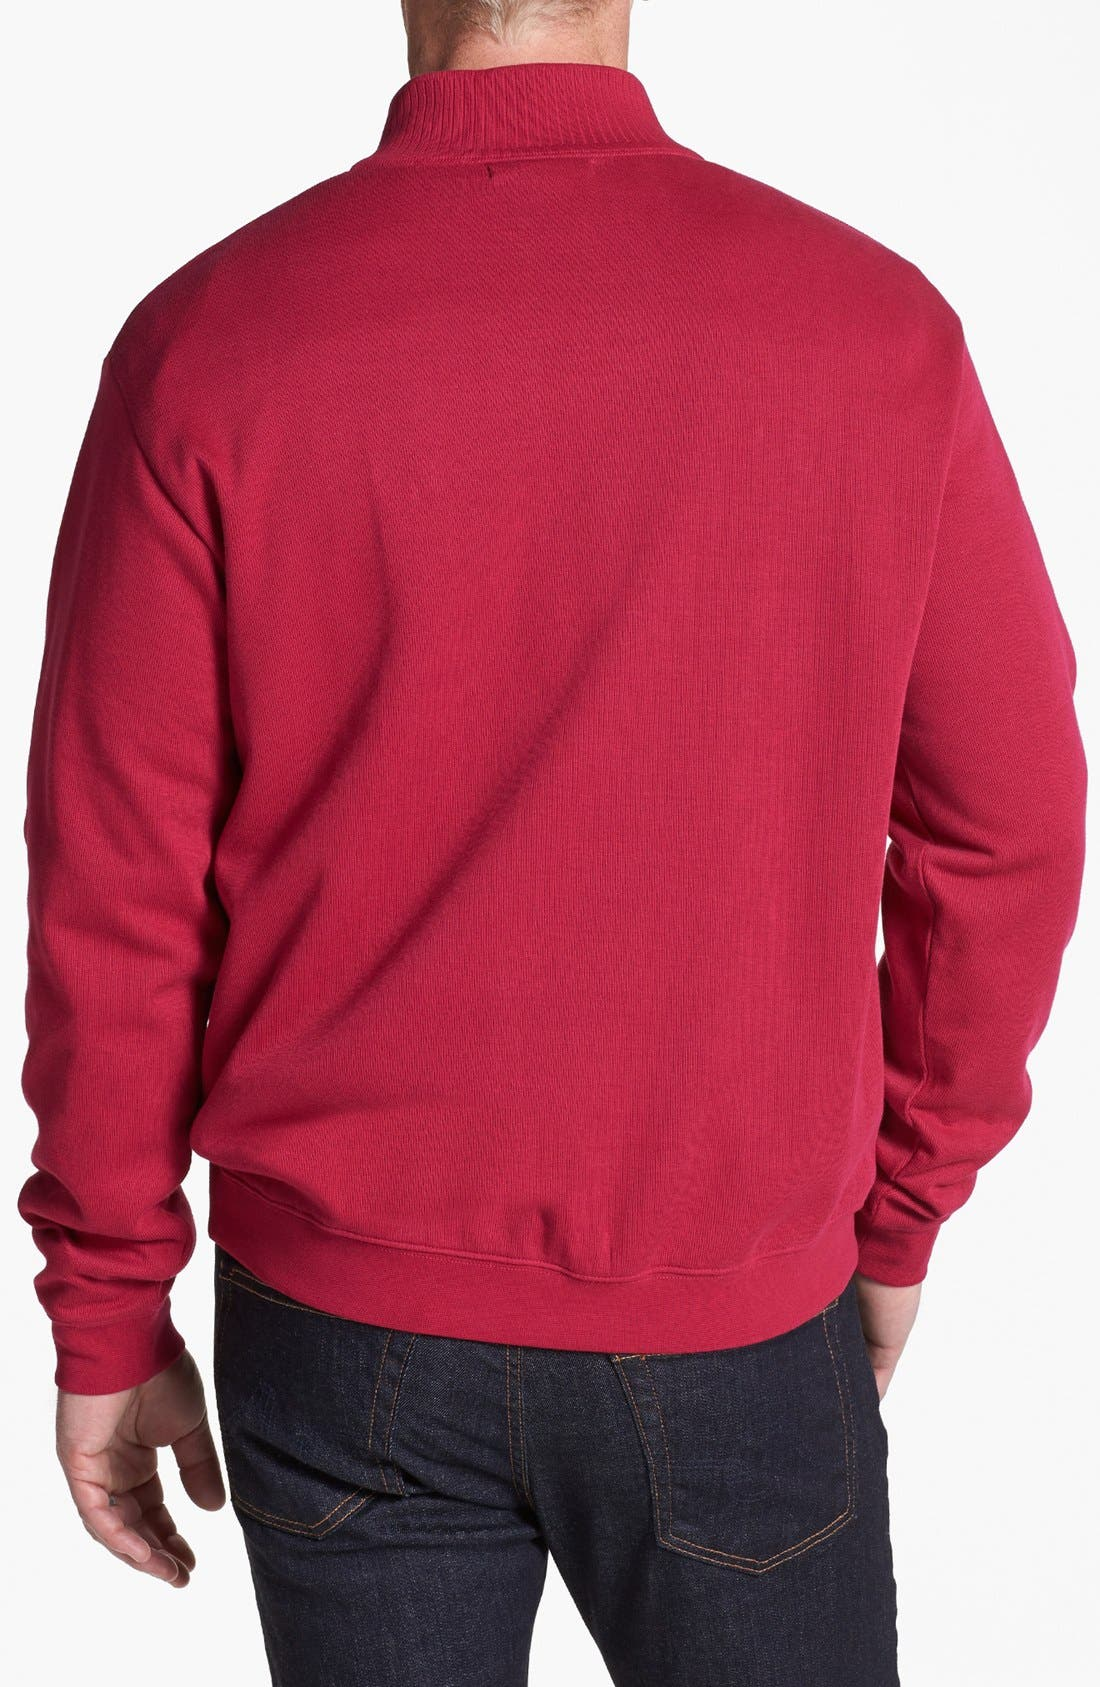 Alternate Image 2  - Cutter & Buck 'Flatback' Pullover Sweatshirt